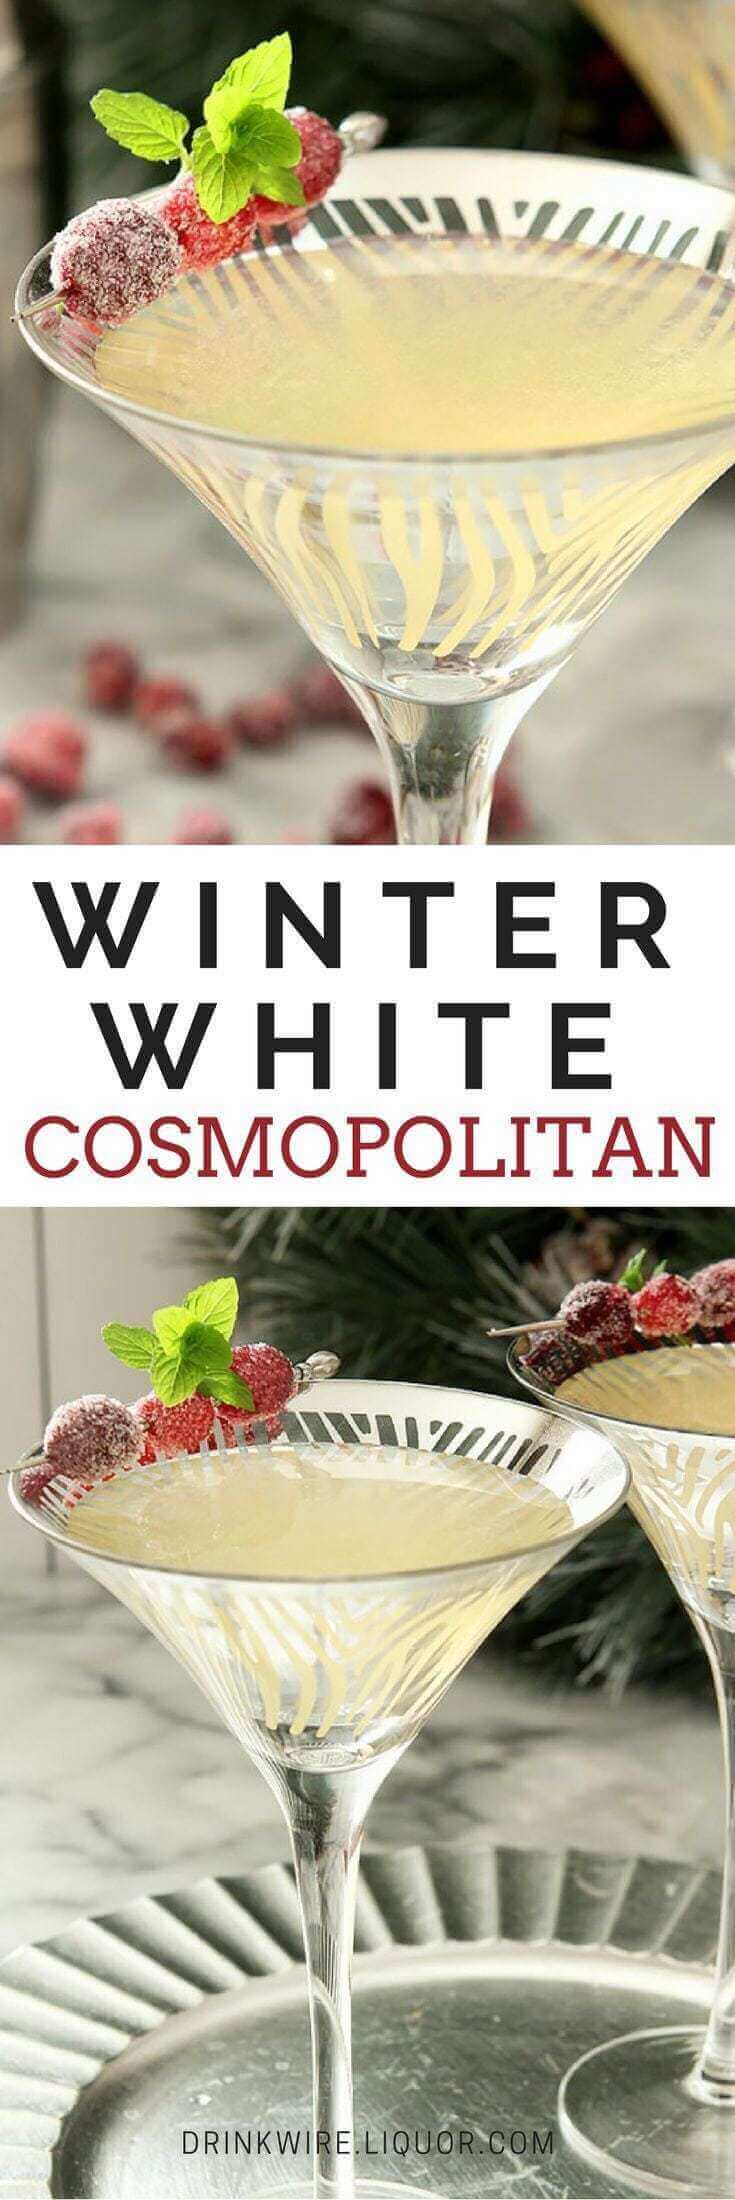 Winter White Cosmopolitan.